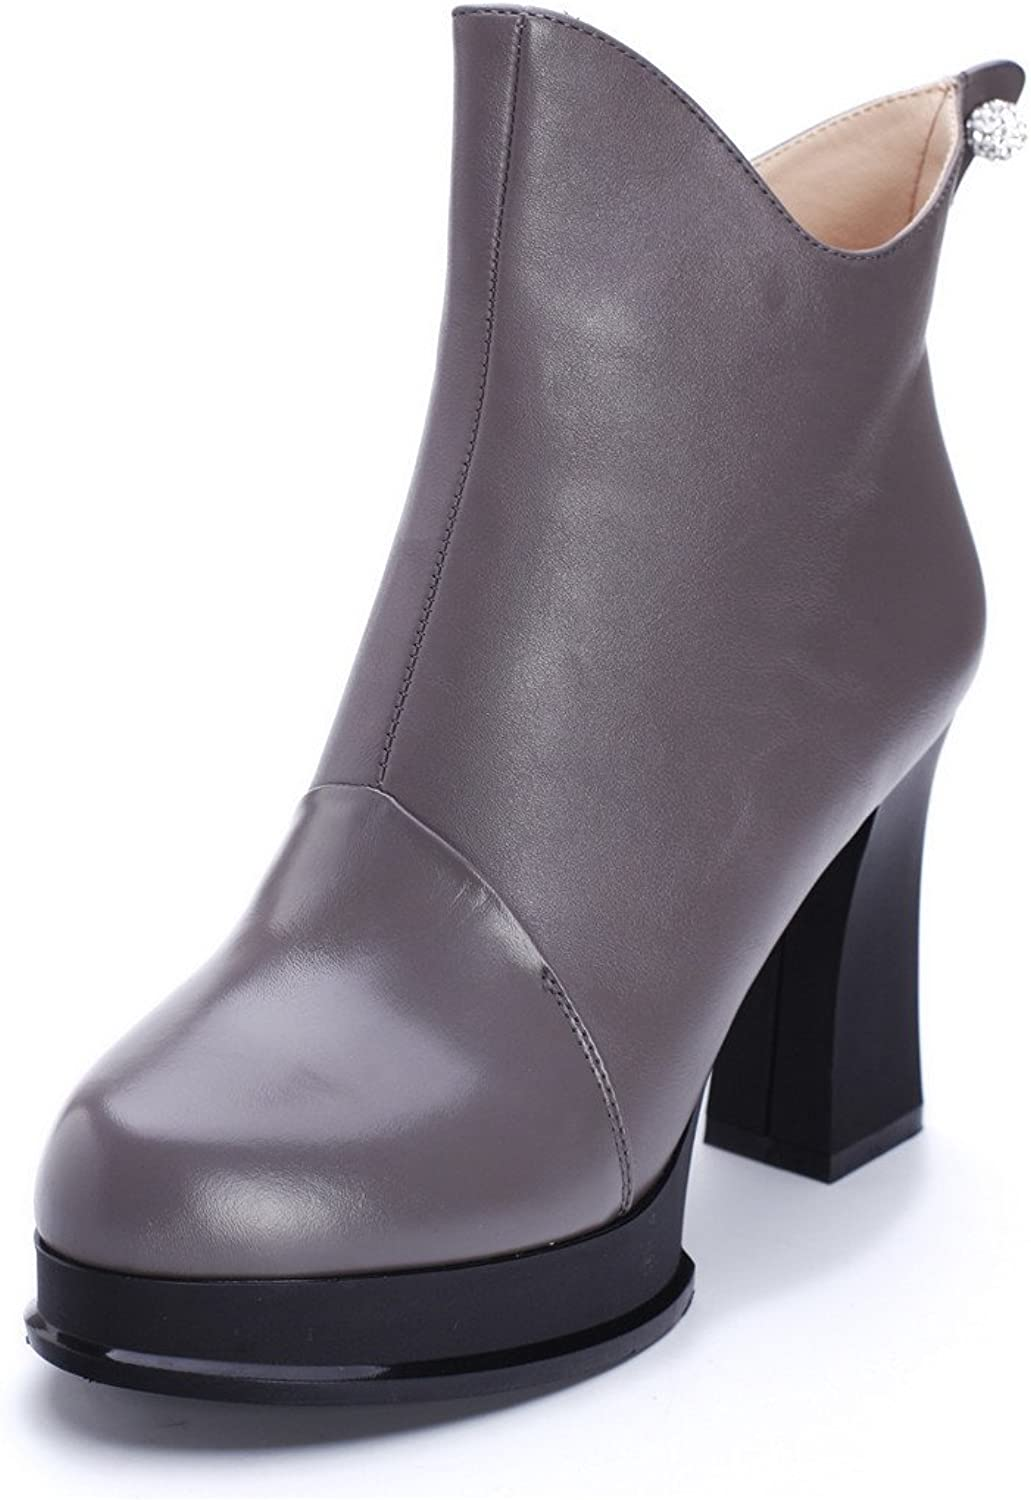 ZQ@QXChristmas gift Europe leather boots with with with